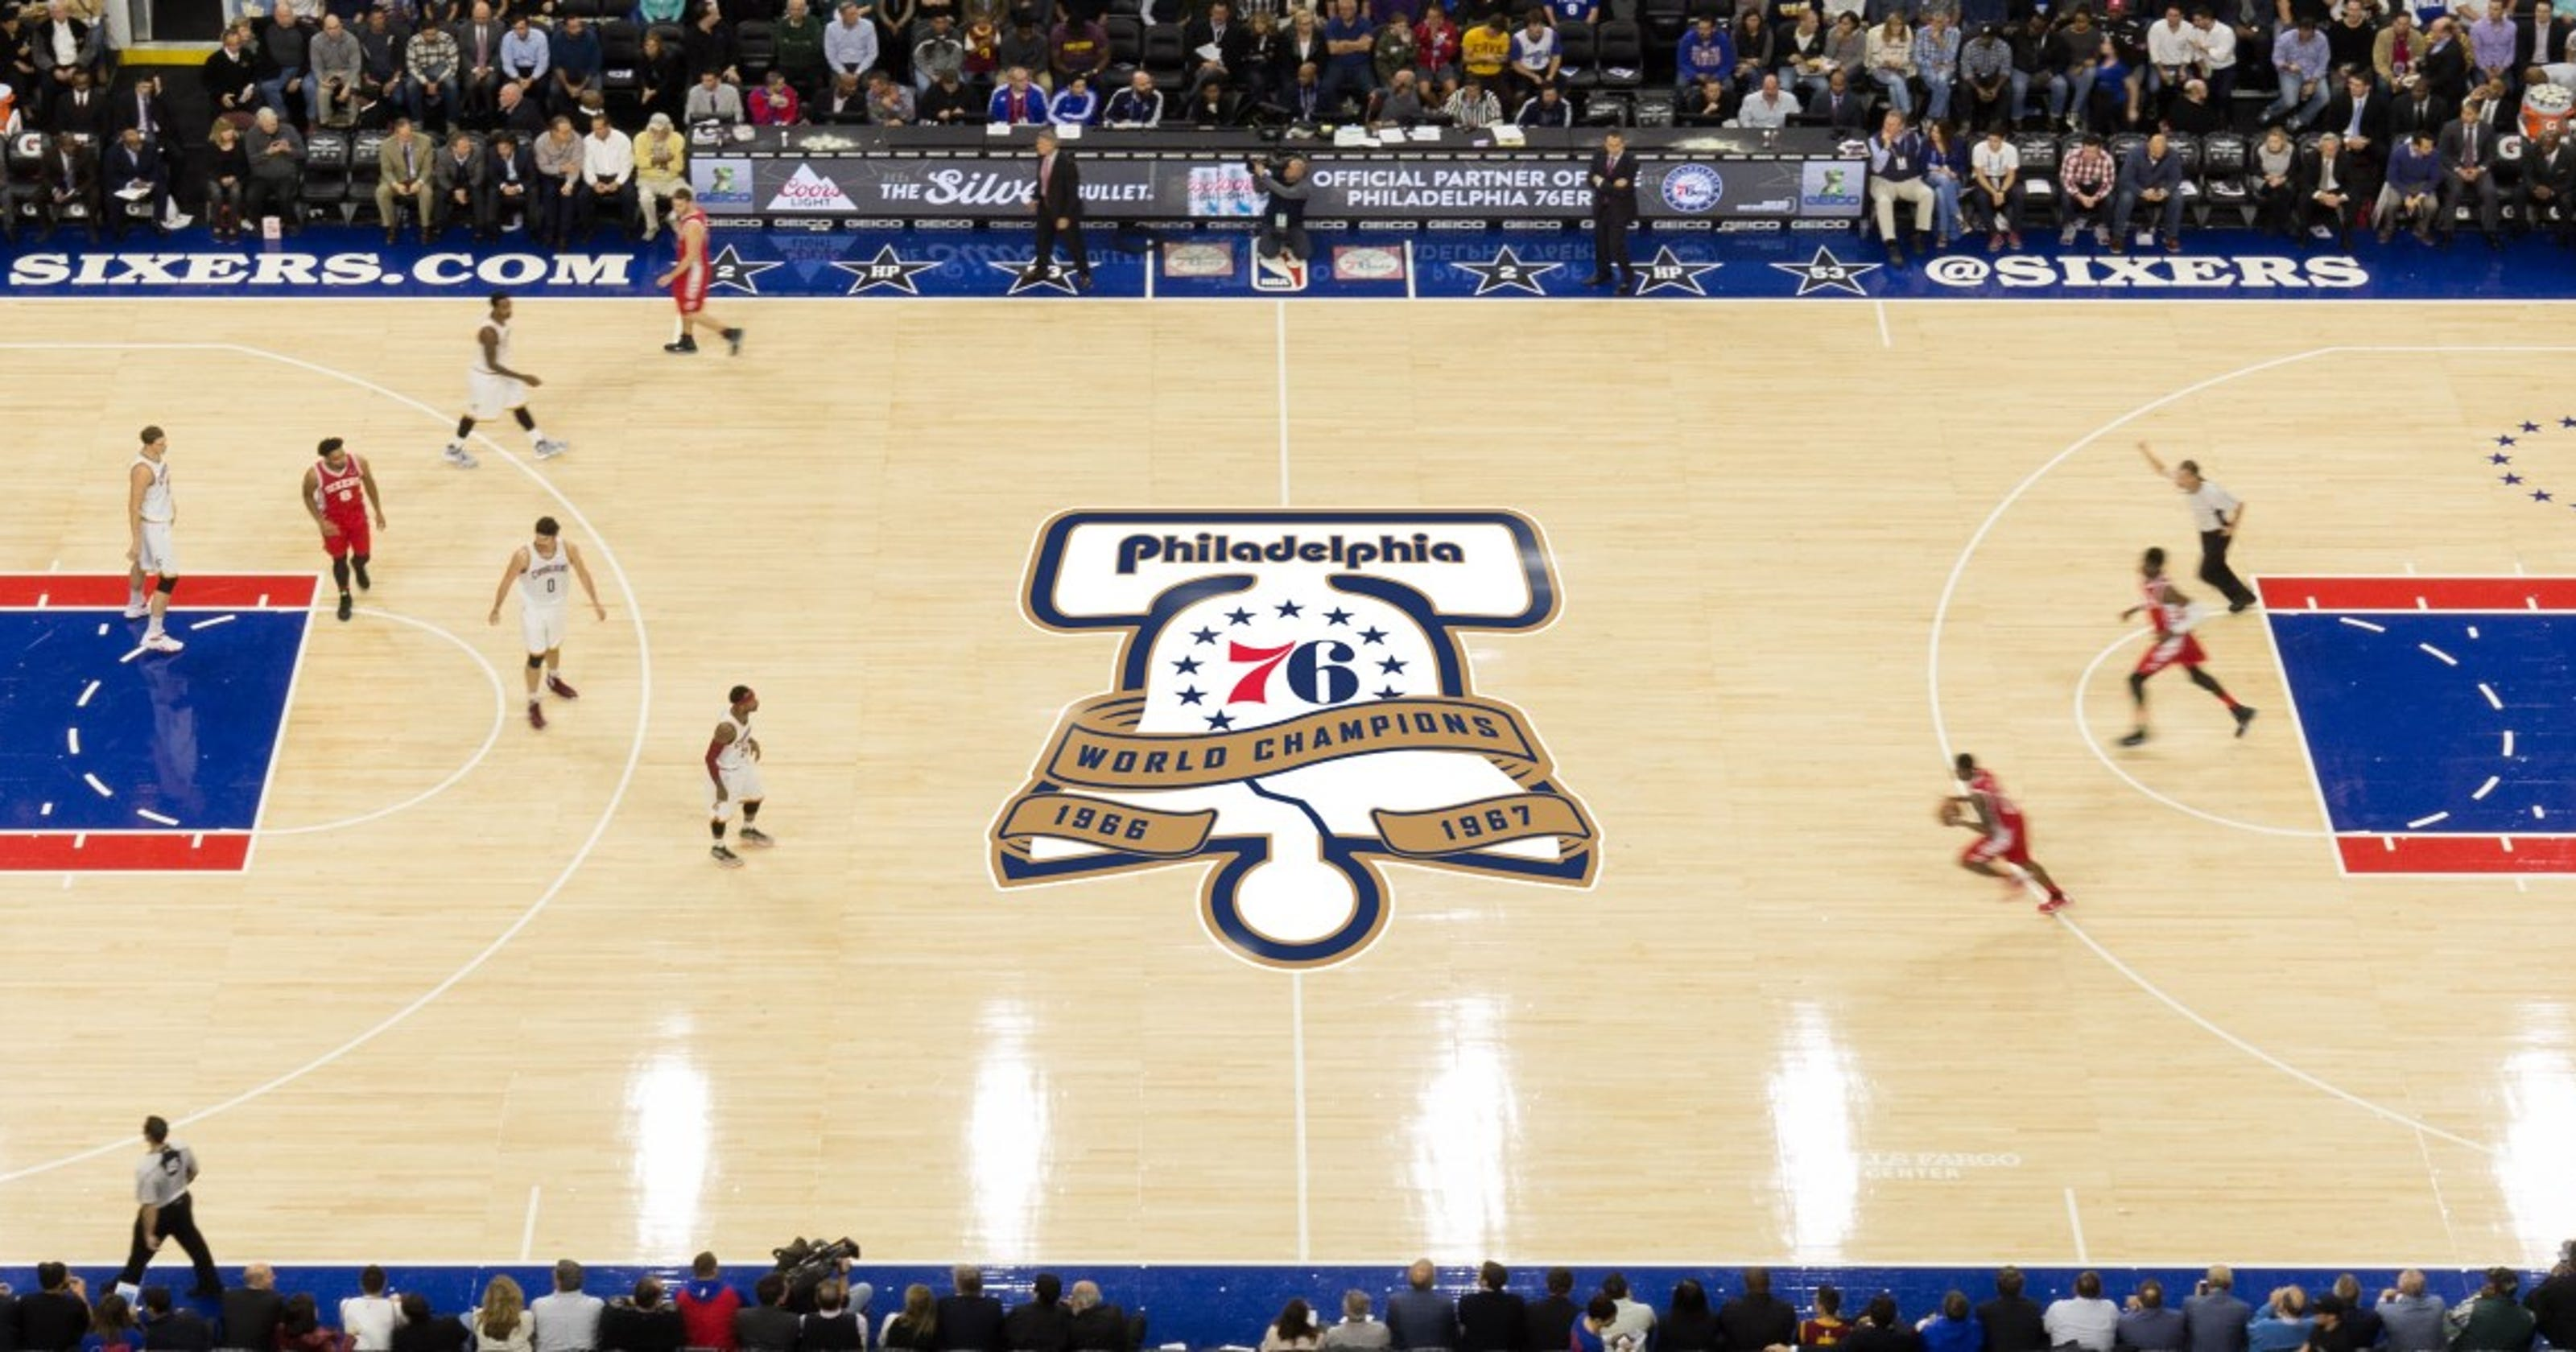 7d88c0d6c Philadelphia 76ers to pay tribute to 1967 championship team